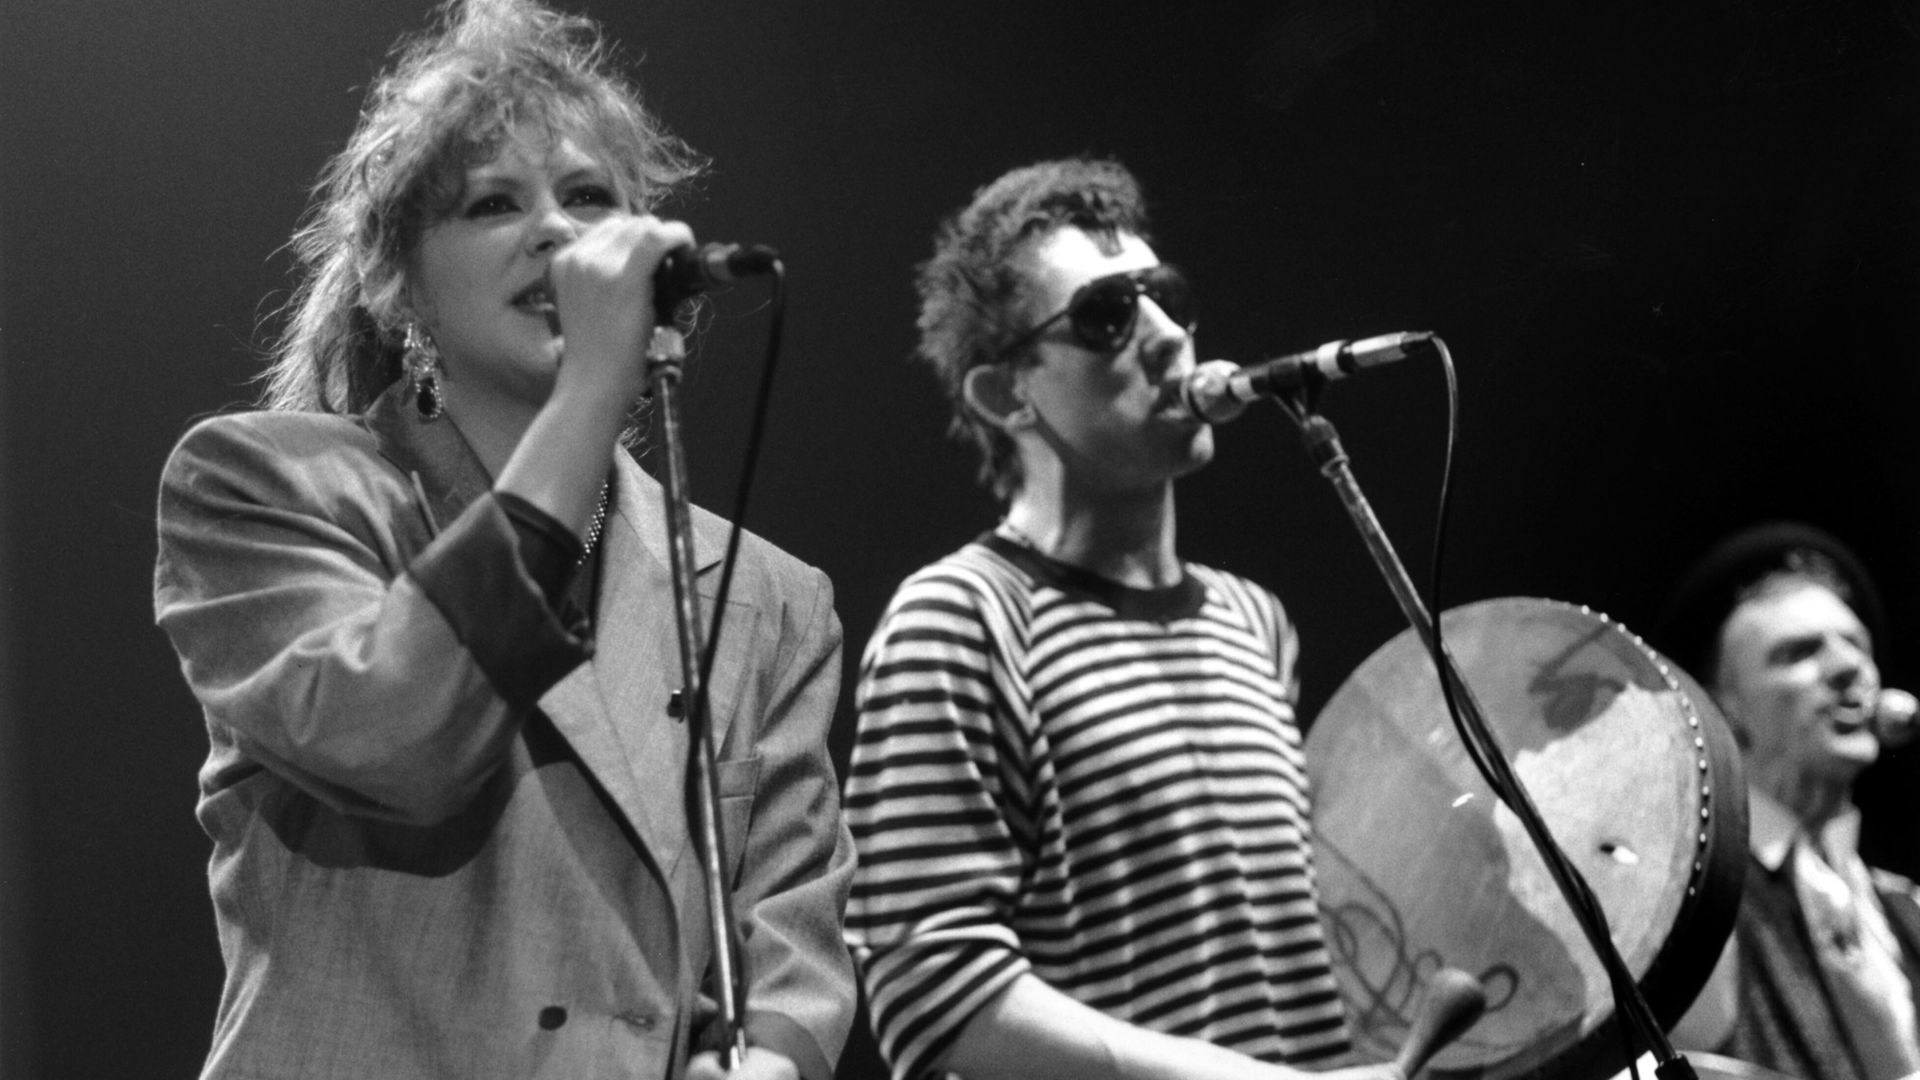 Kirsty MacColl and Shane MacGowan - Credit: Getty Images